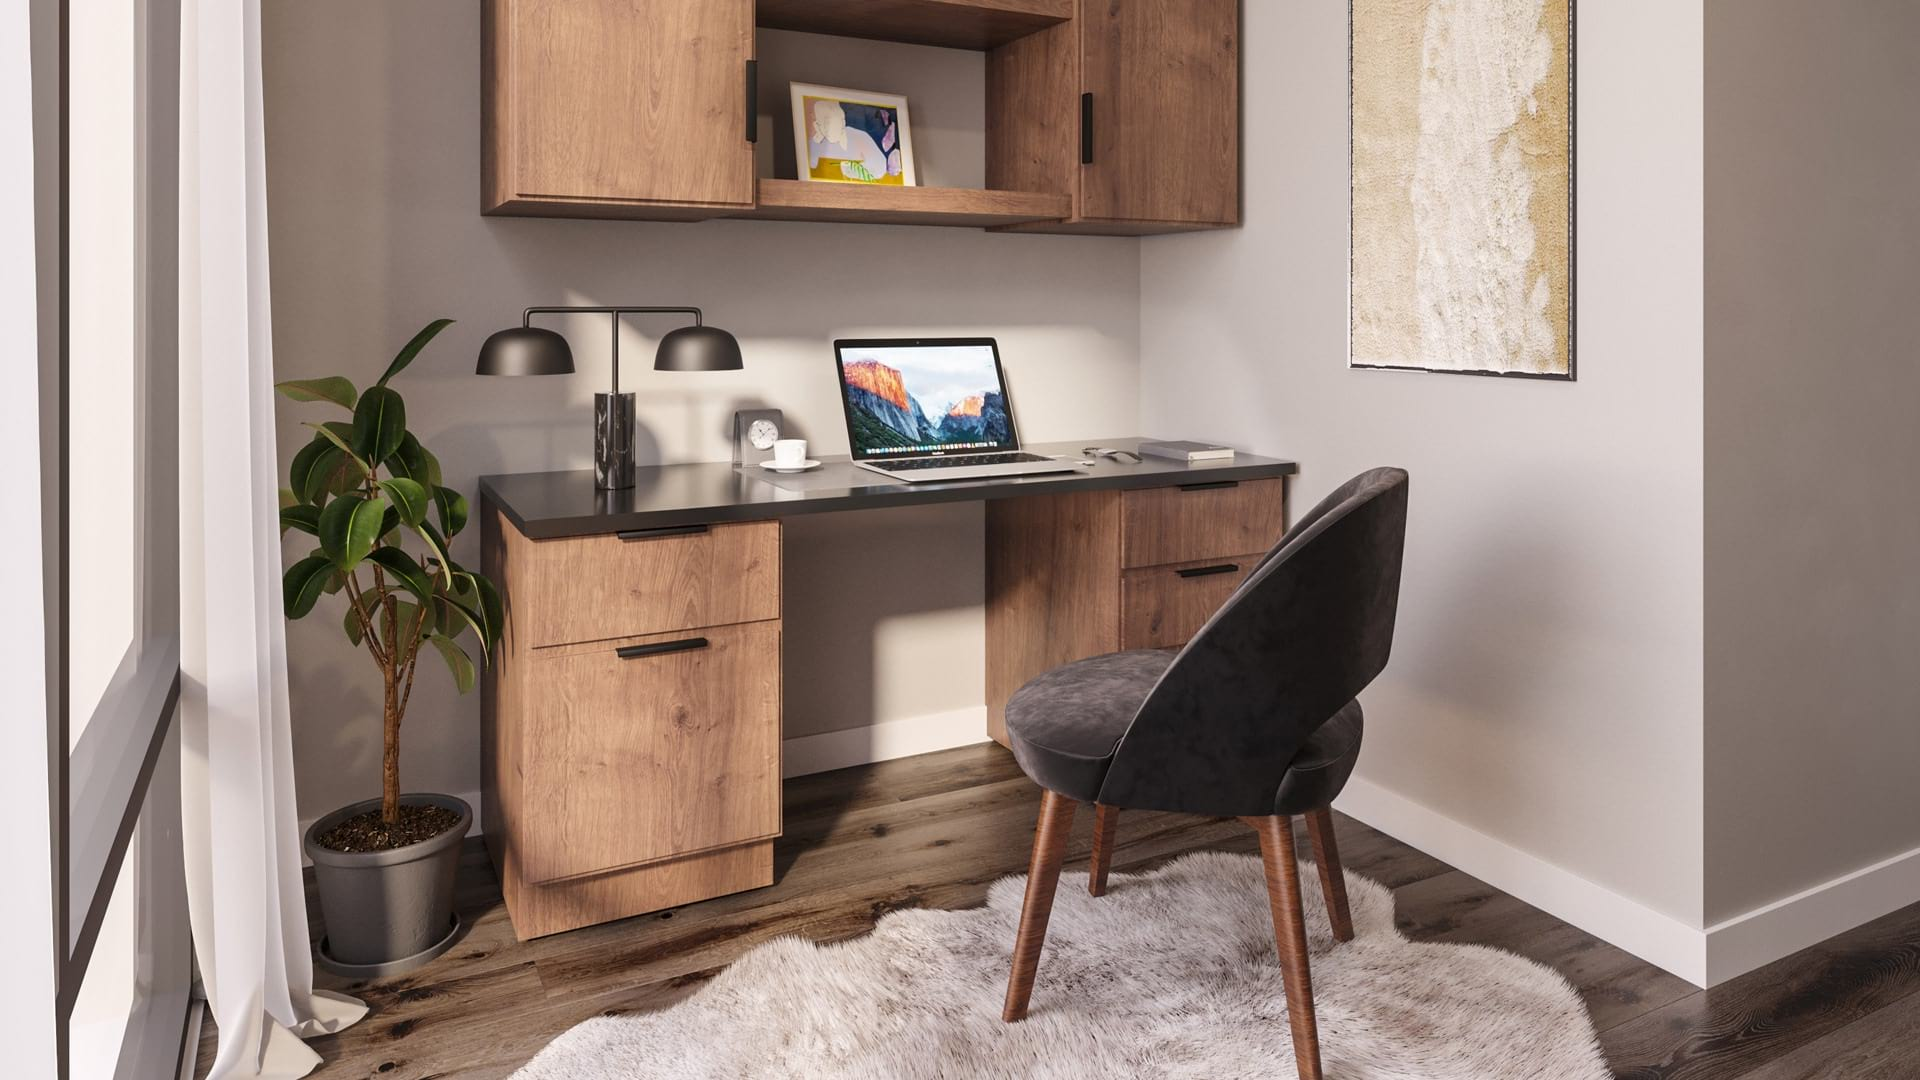 Thoughtfully designed work from home spaces